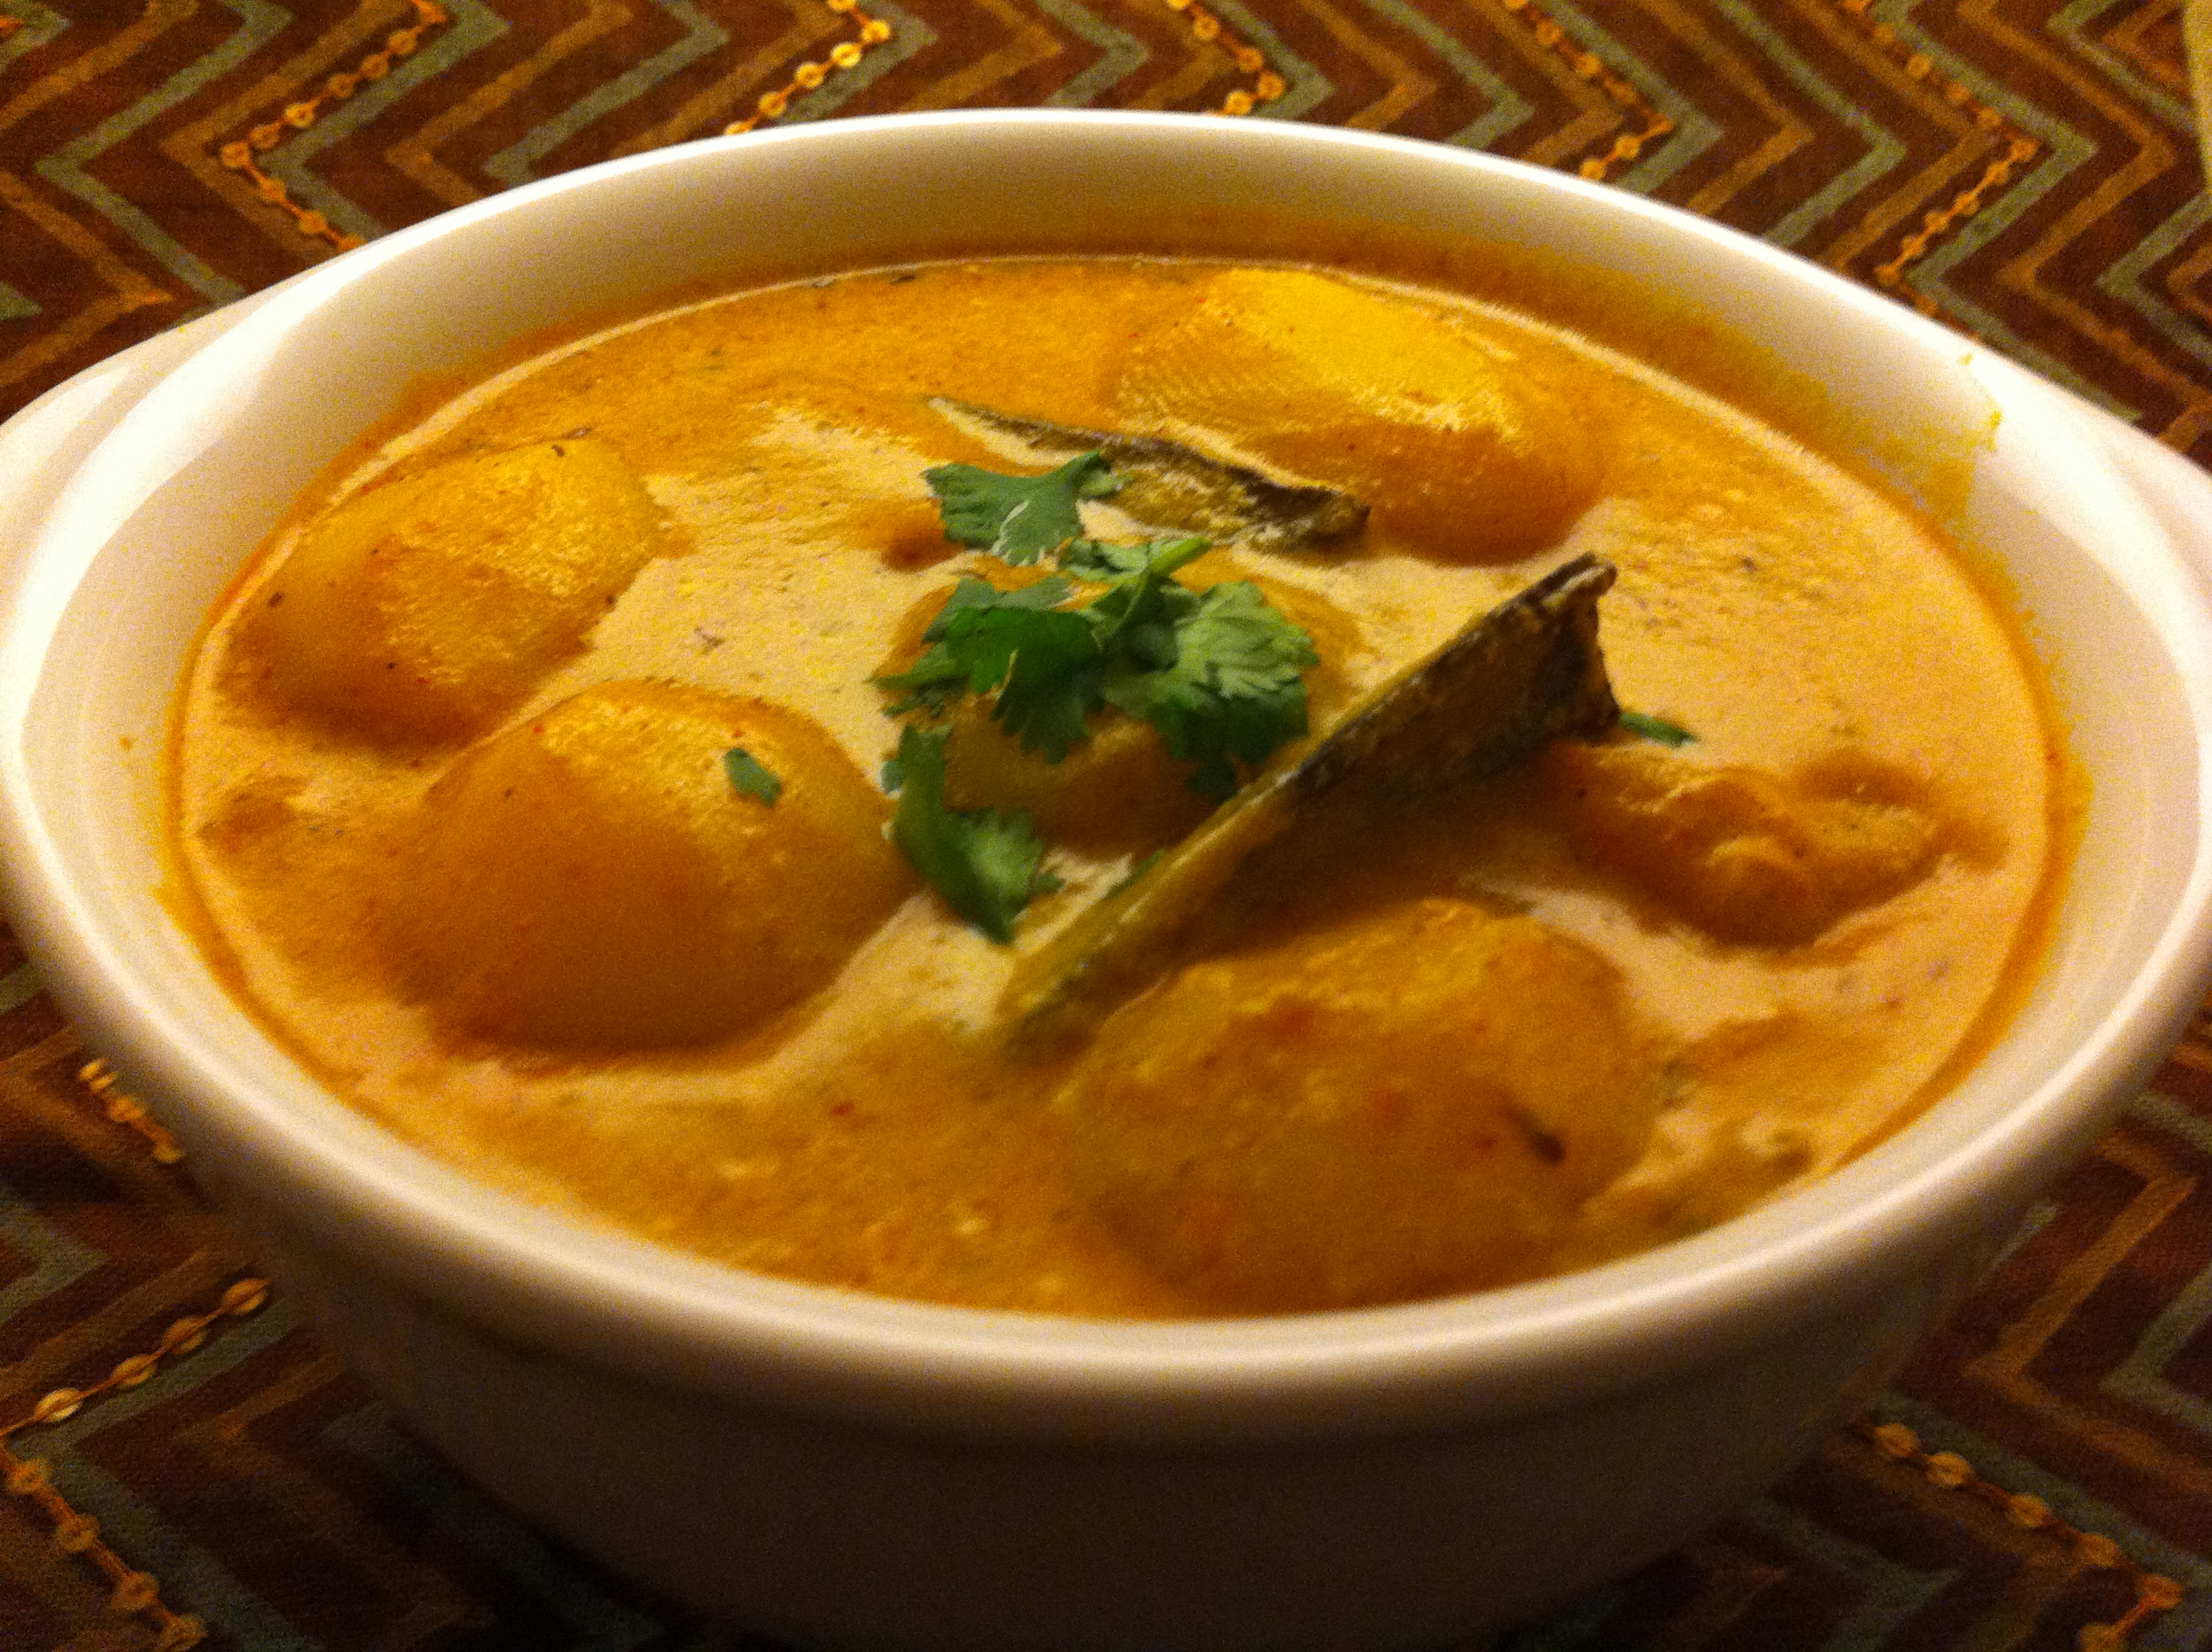 Kashmiri Dum Aloo (Baby Potatoes in a Rich Yogurt Gravy)